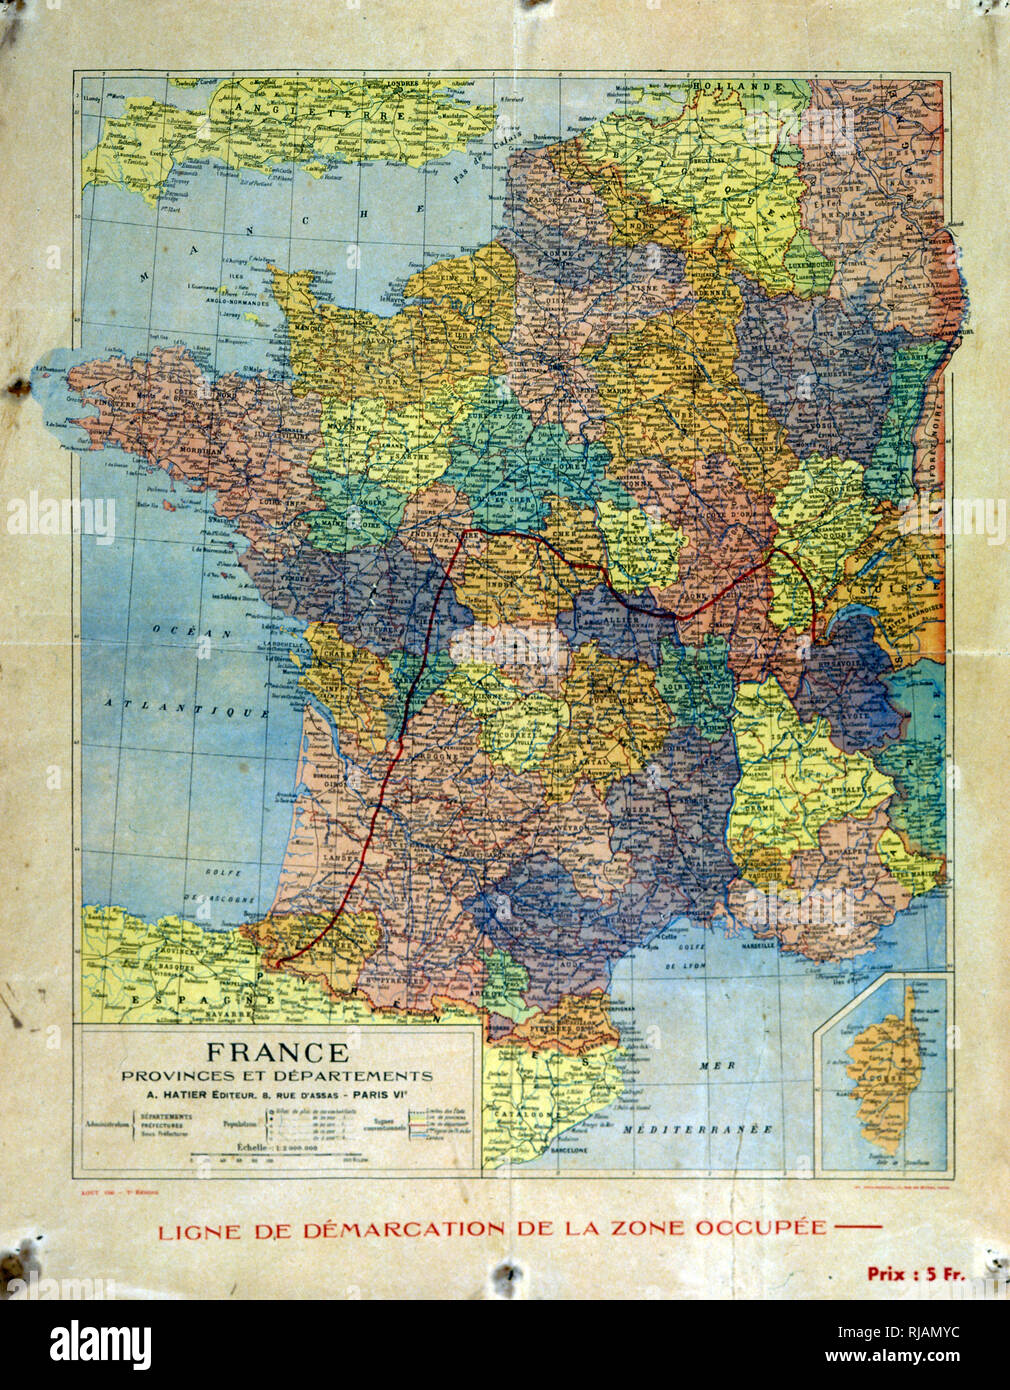 Map Of France 1940.France 1940 Map Stock Photos France 1940 Map Stock Images Alamy